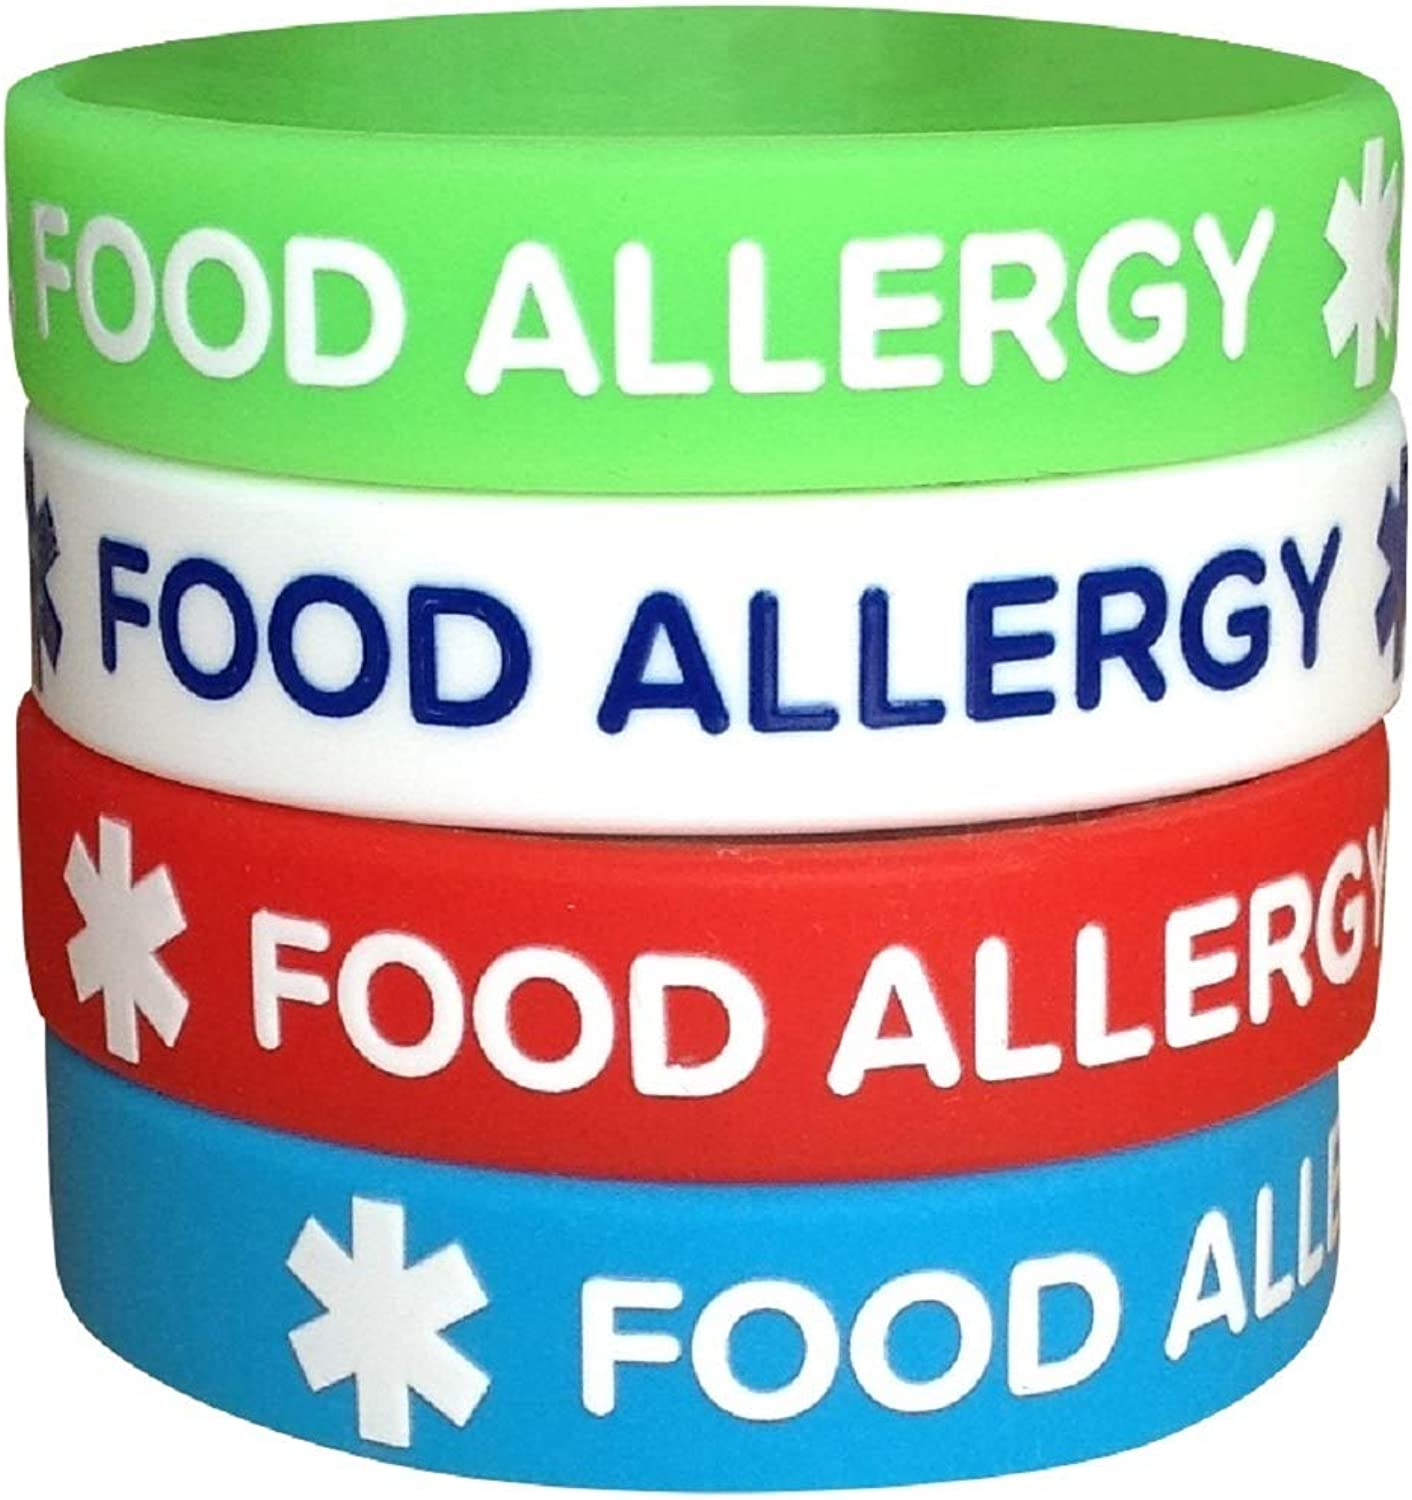 Food Allergy Silicone Bracelets for Teens Kids Child 6.3